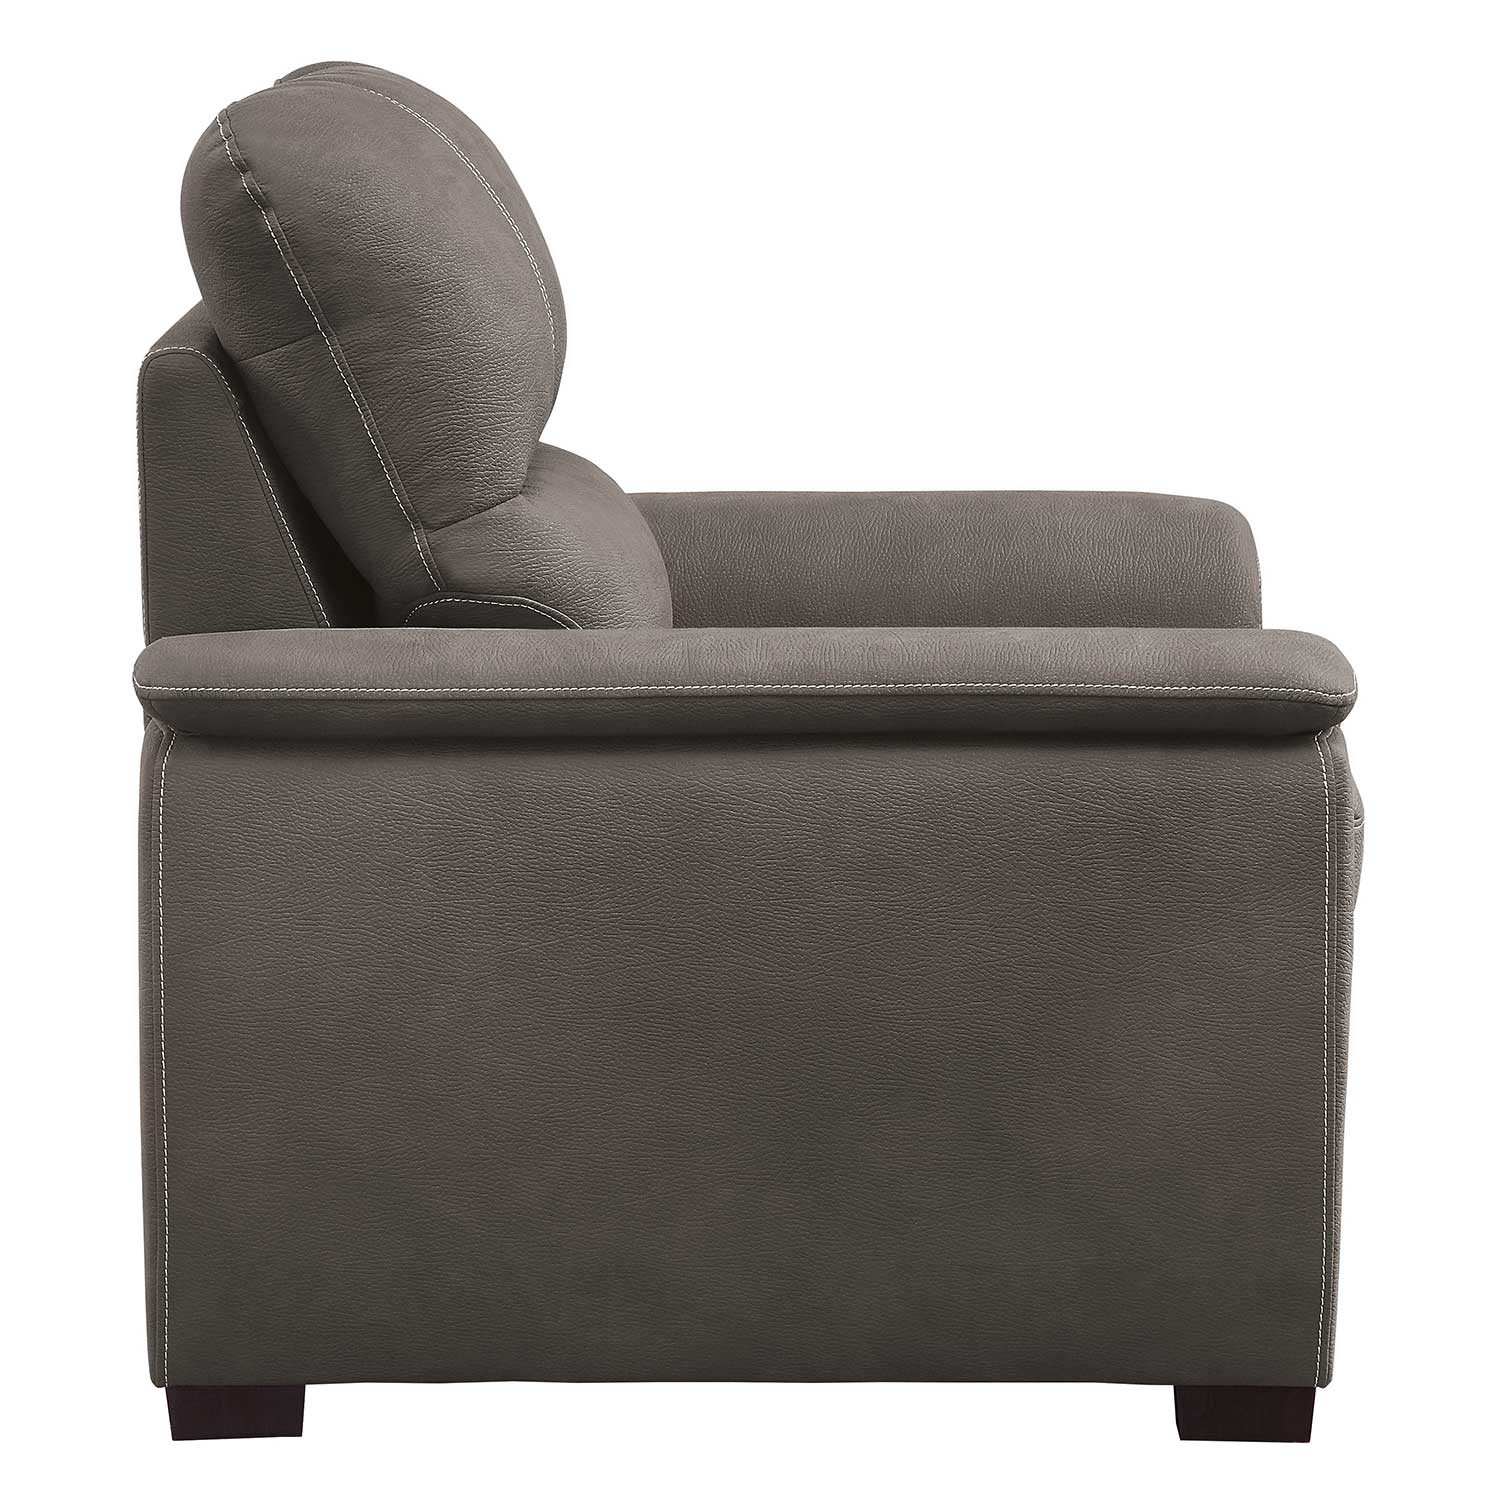 Homelegance Andes Chair with Pull-out Ottoman - Taupe